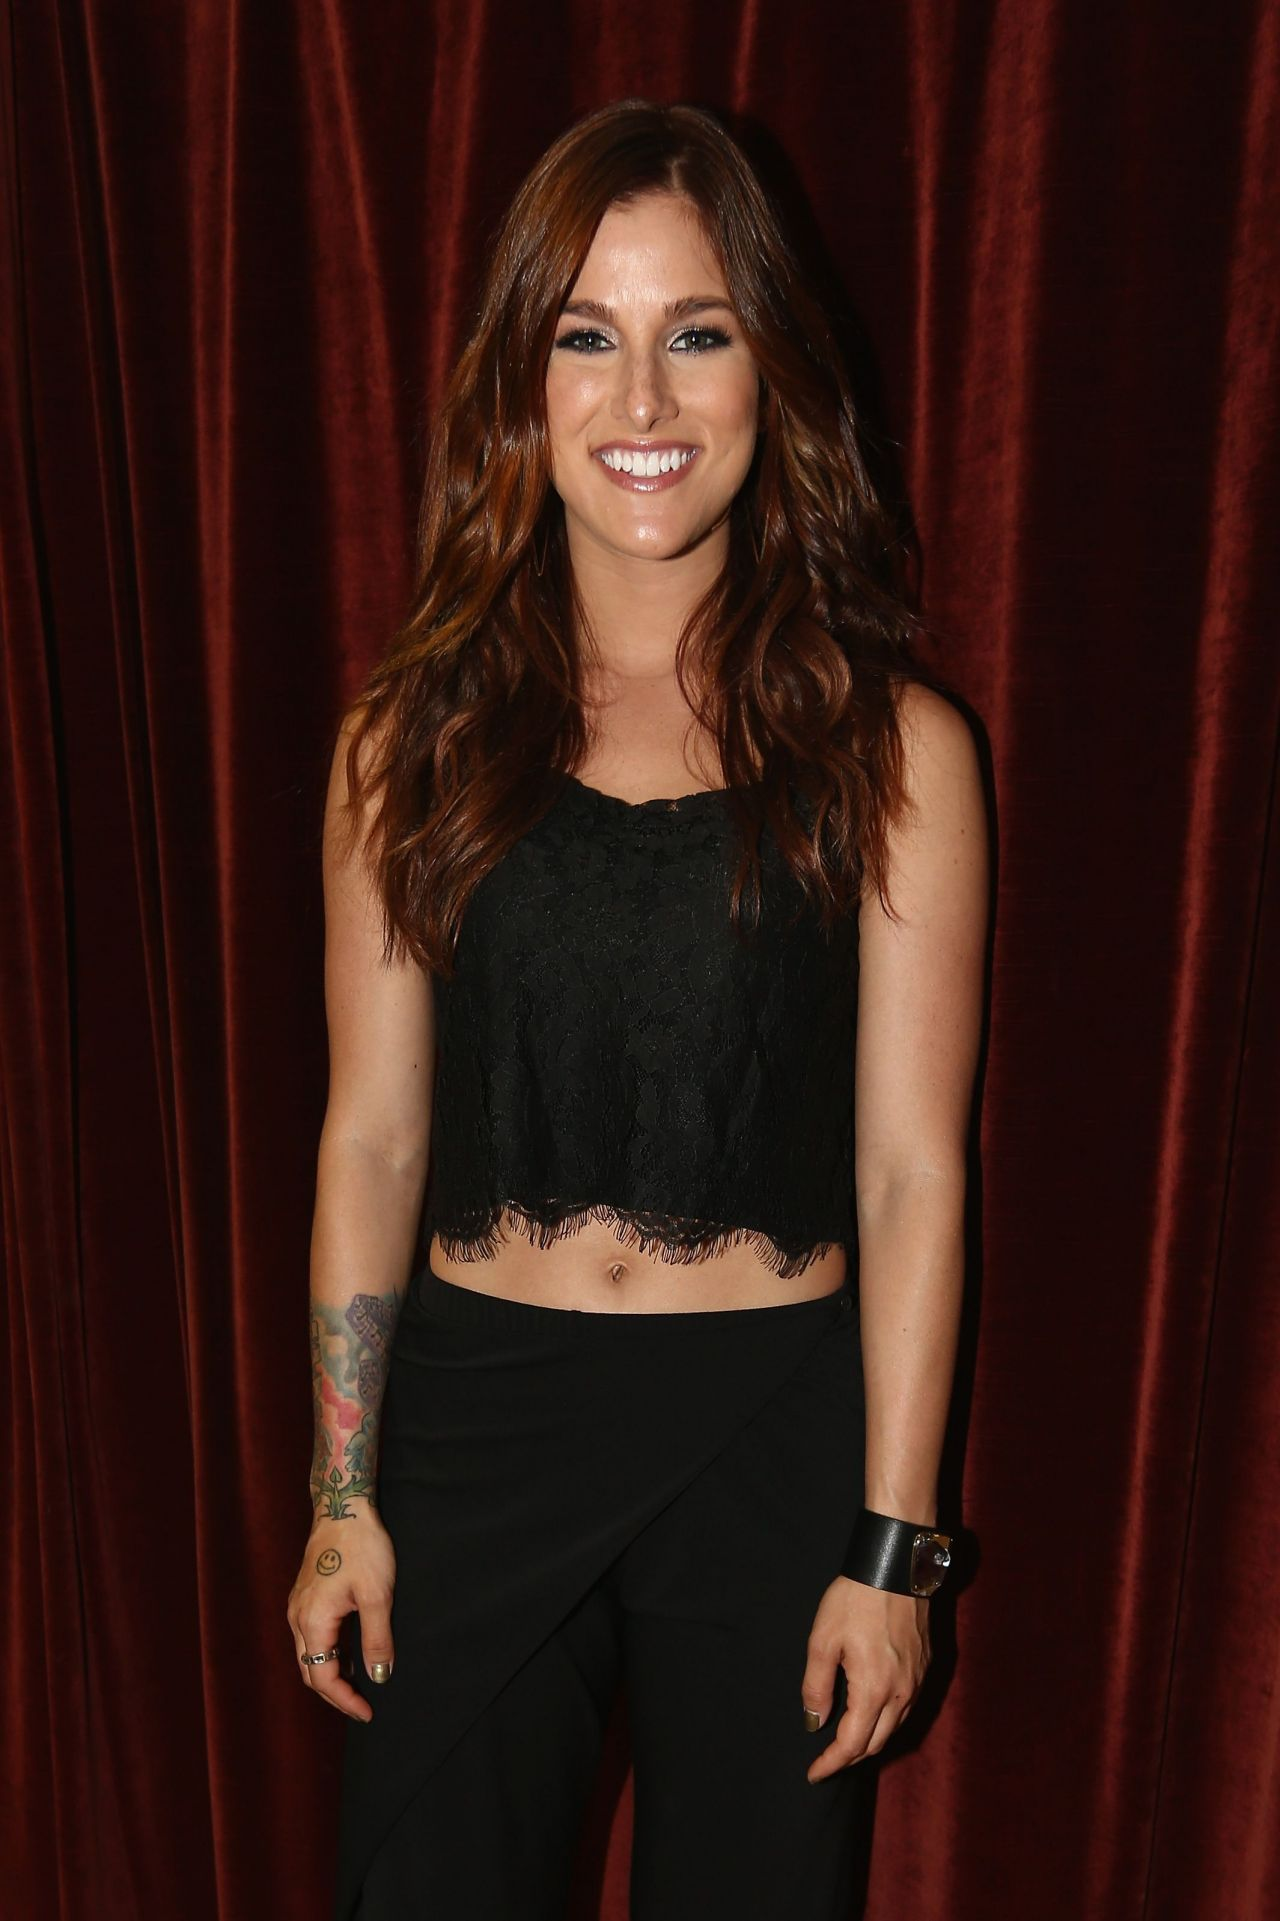 Cassadee Pope at Darius and Friends Concert in Nashville